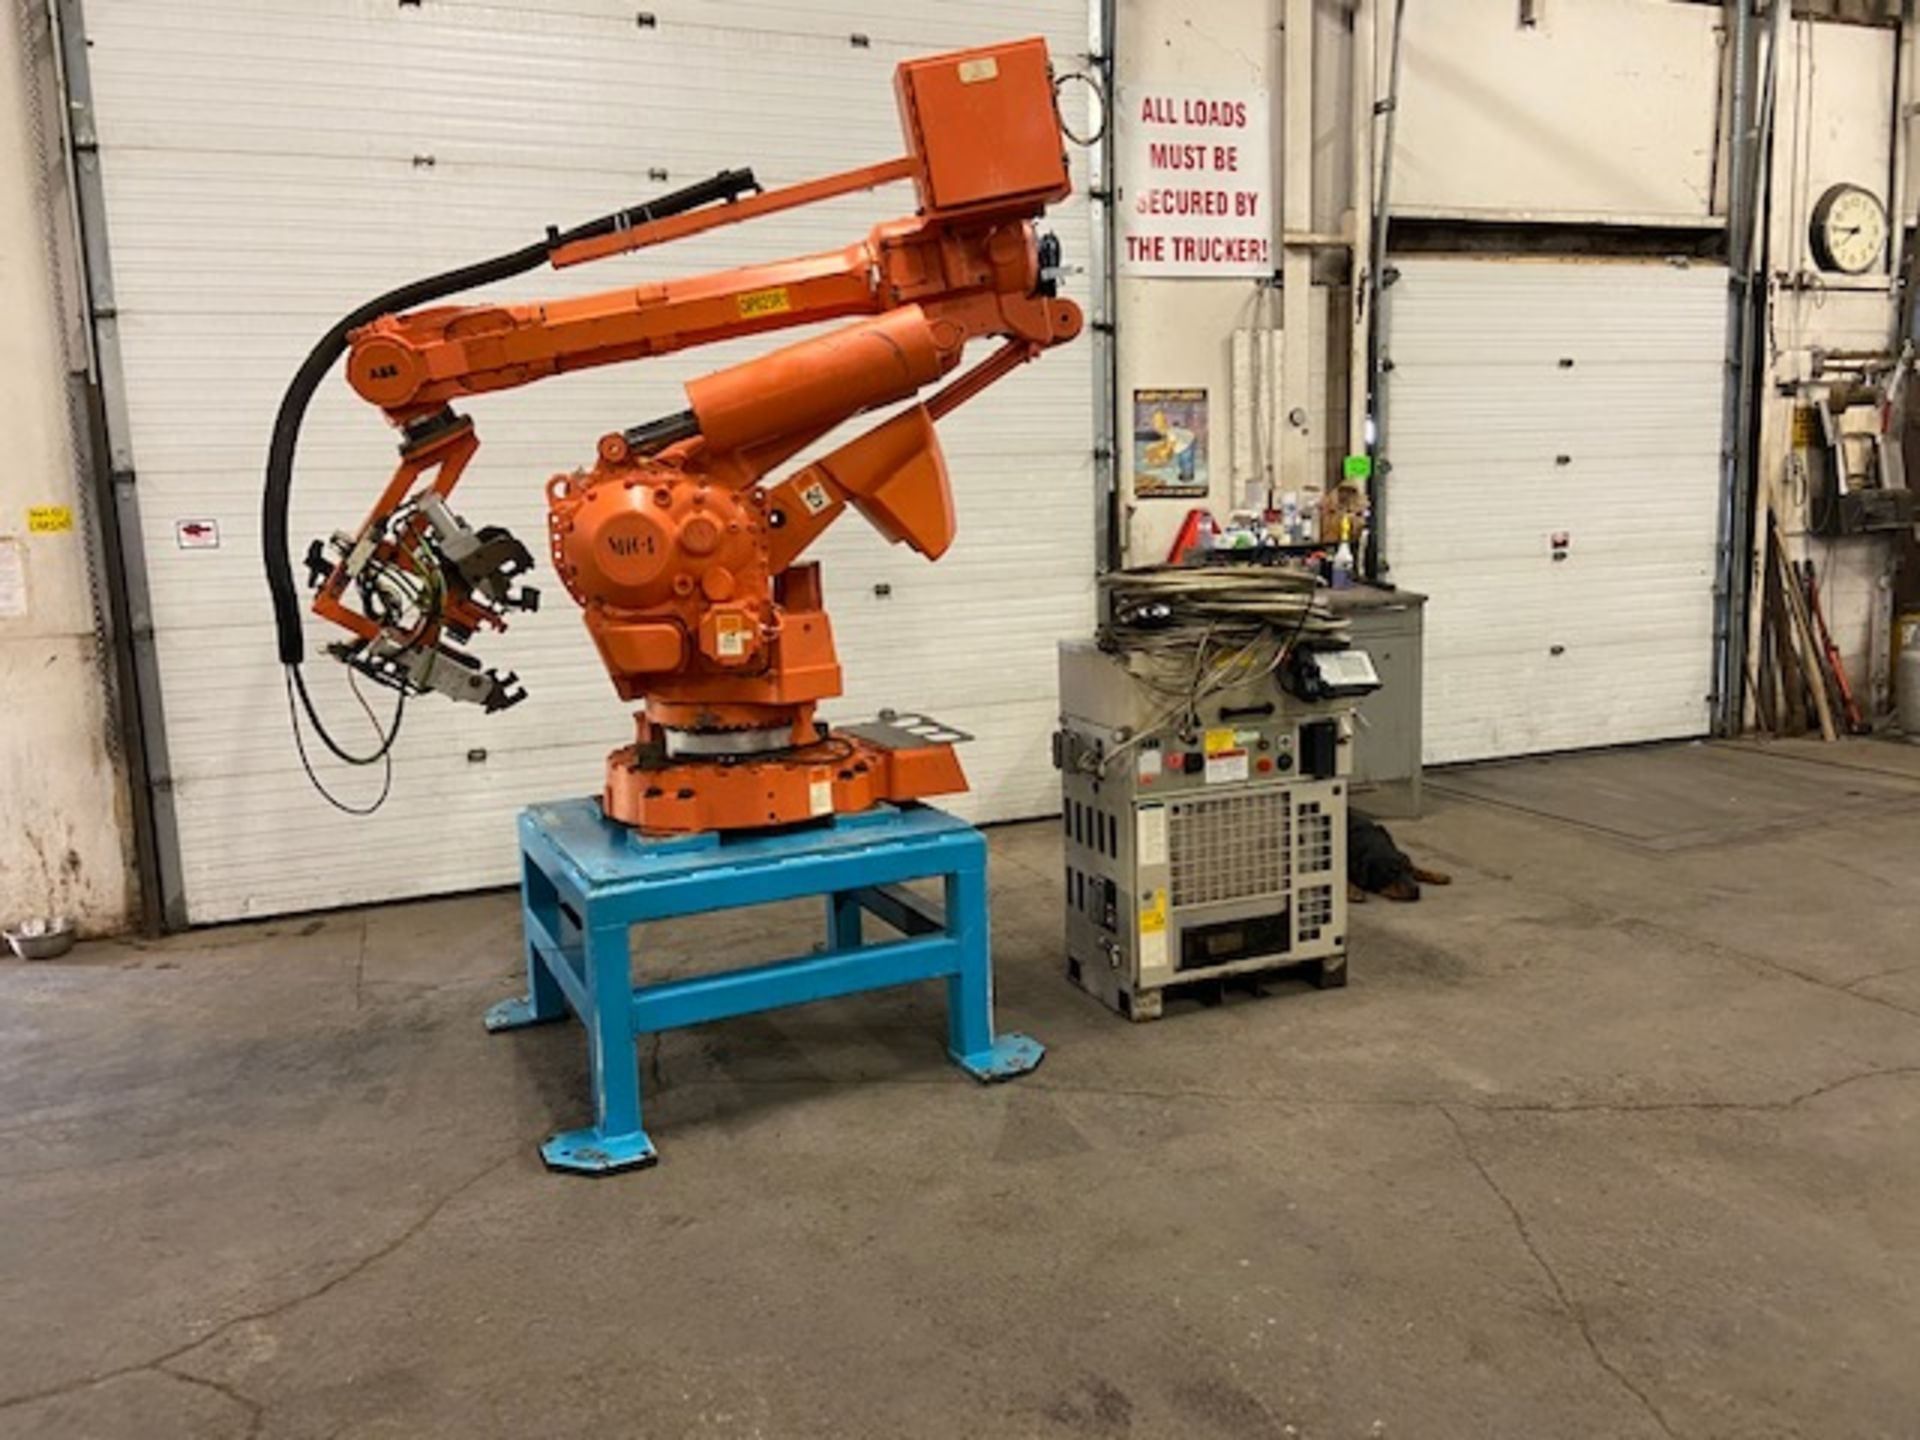 2008 ABB IRB 6400R Robotic Material Handler Package w/ Controller and end of arm tooling - Image 7 of 7